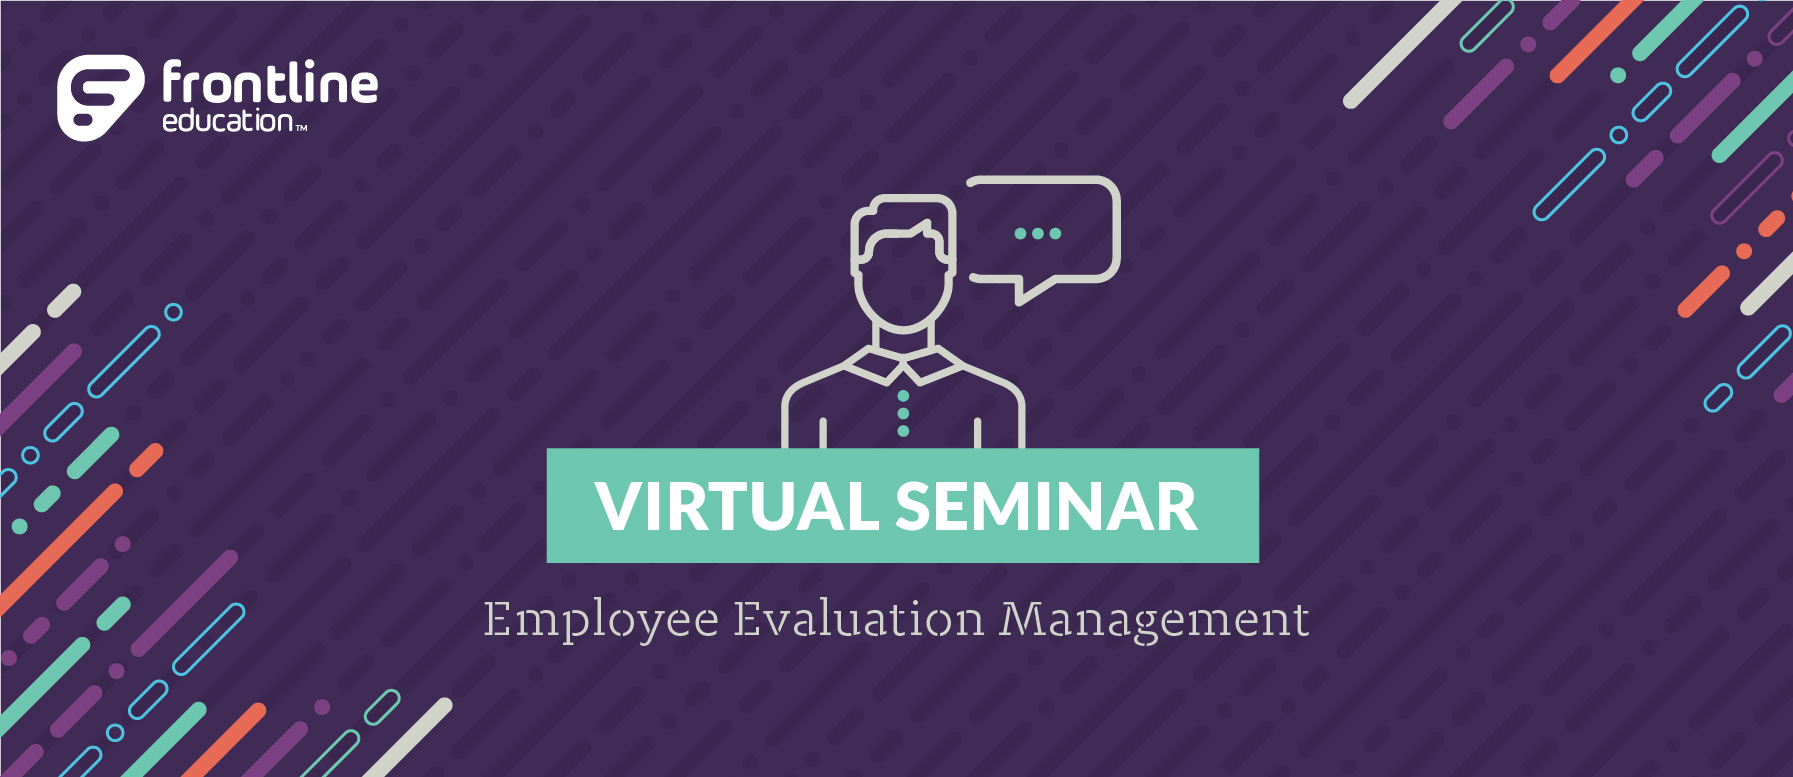 Employee Evaluation Virtual Seminar: Get Ahead of the Game and Rock Rollover